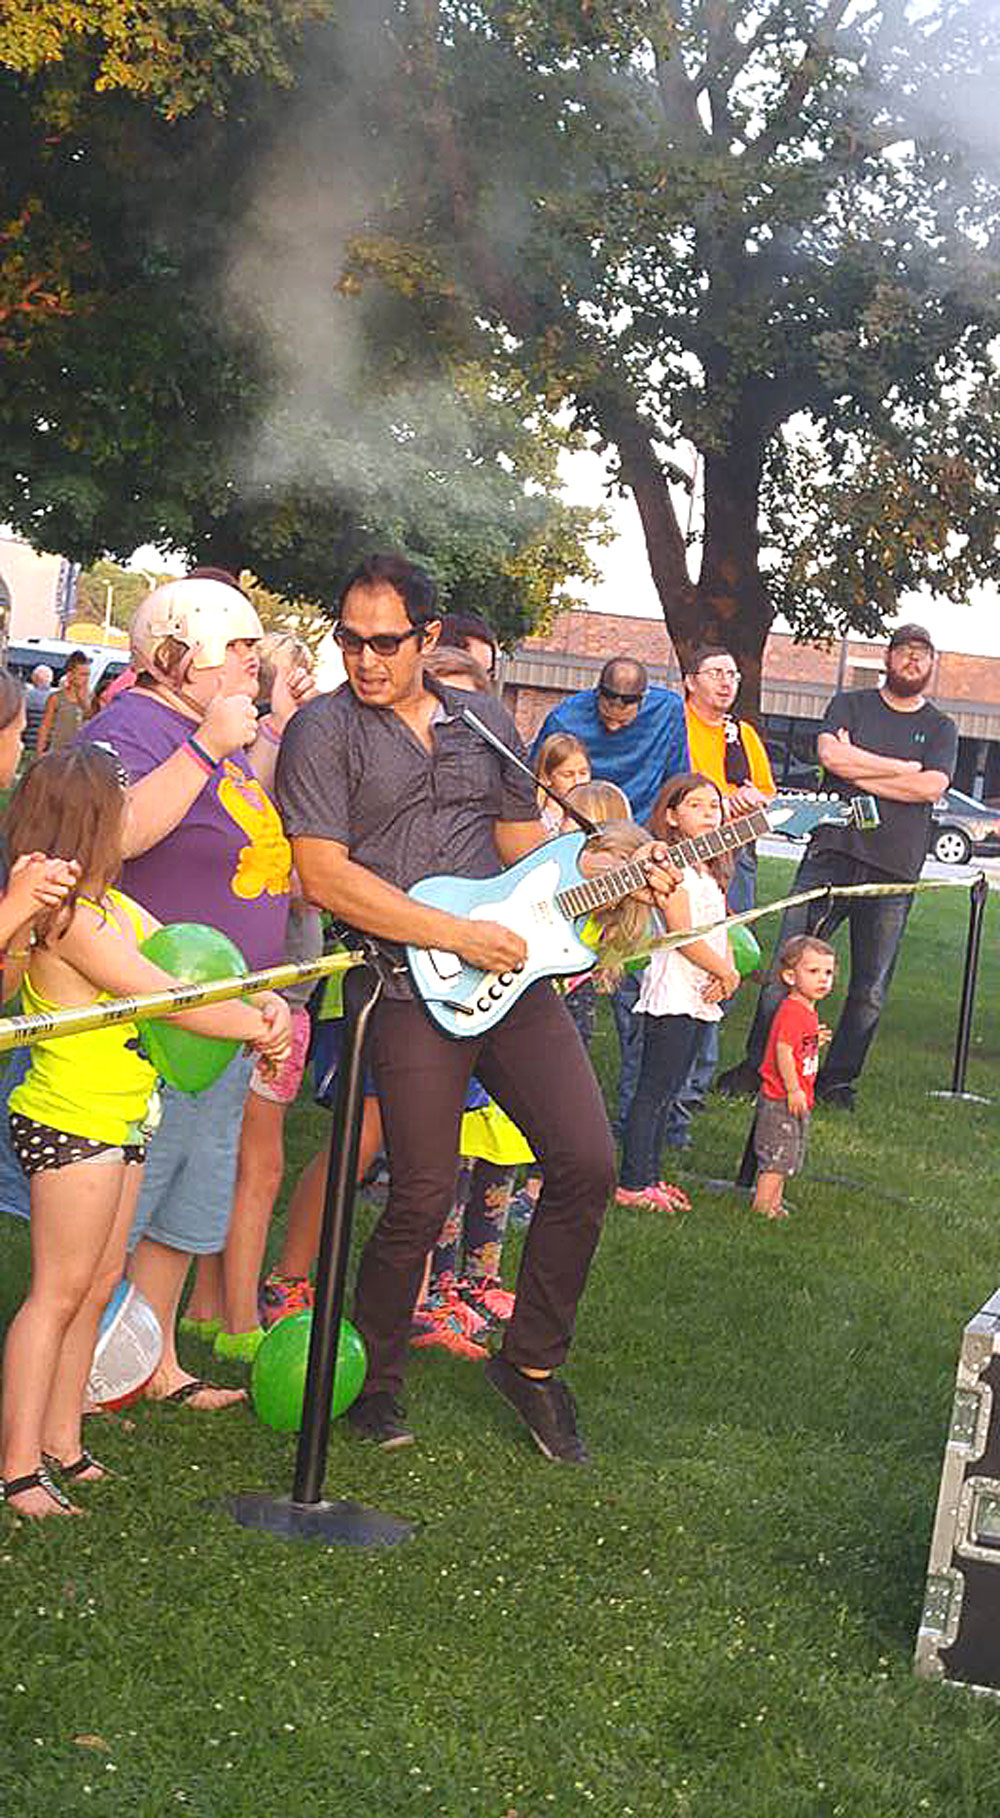 13th annual Christian concert will rock out in downtown Charles City this weekend